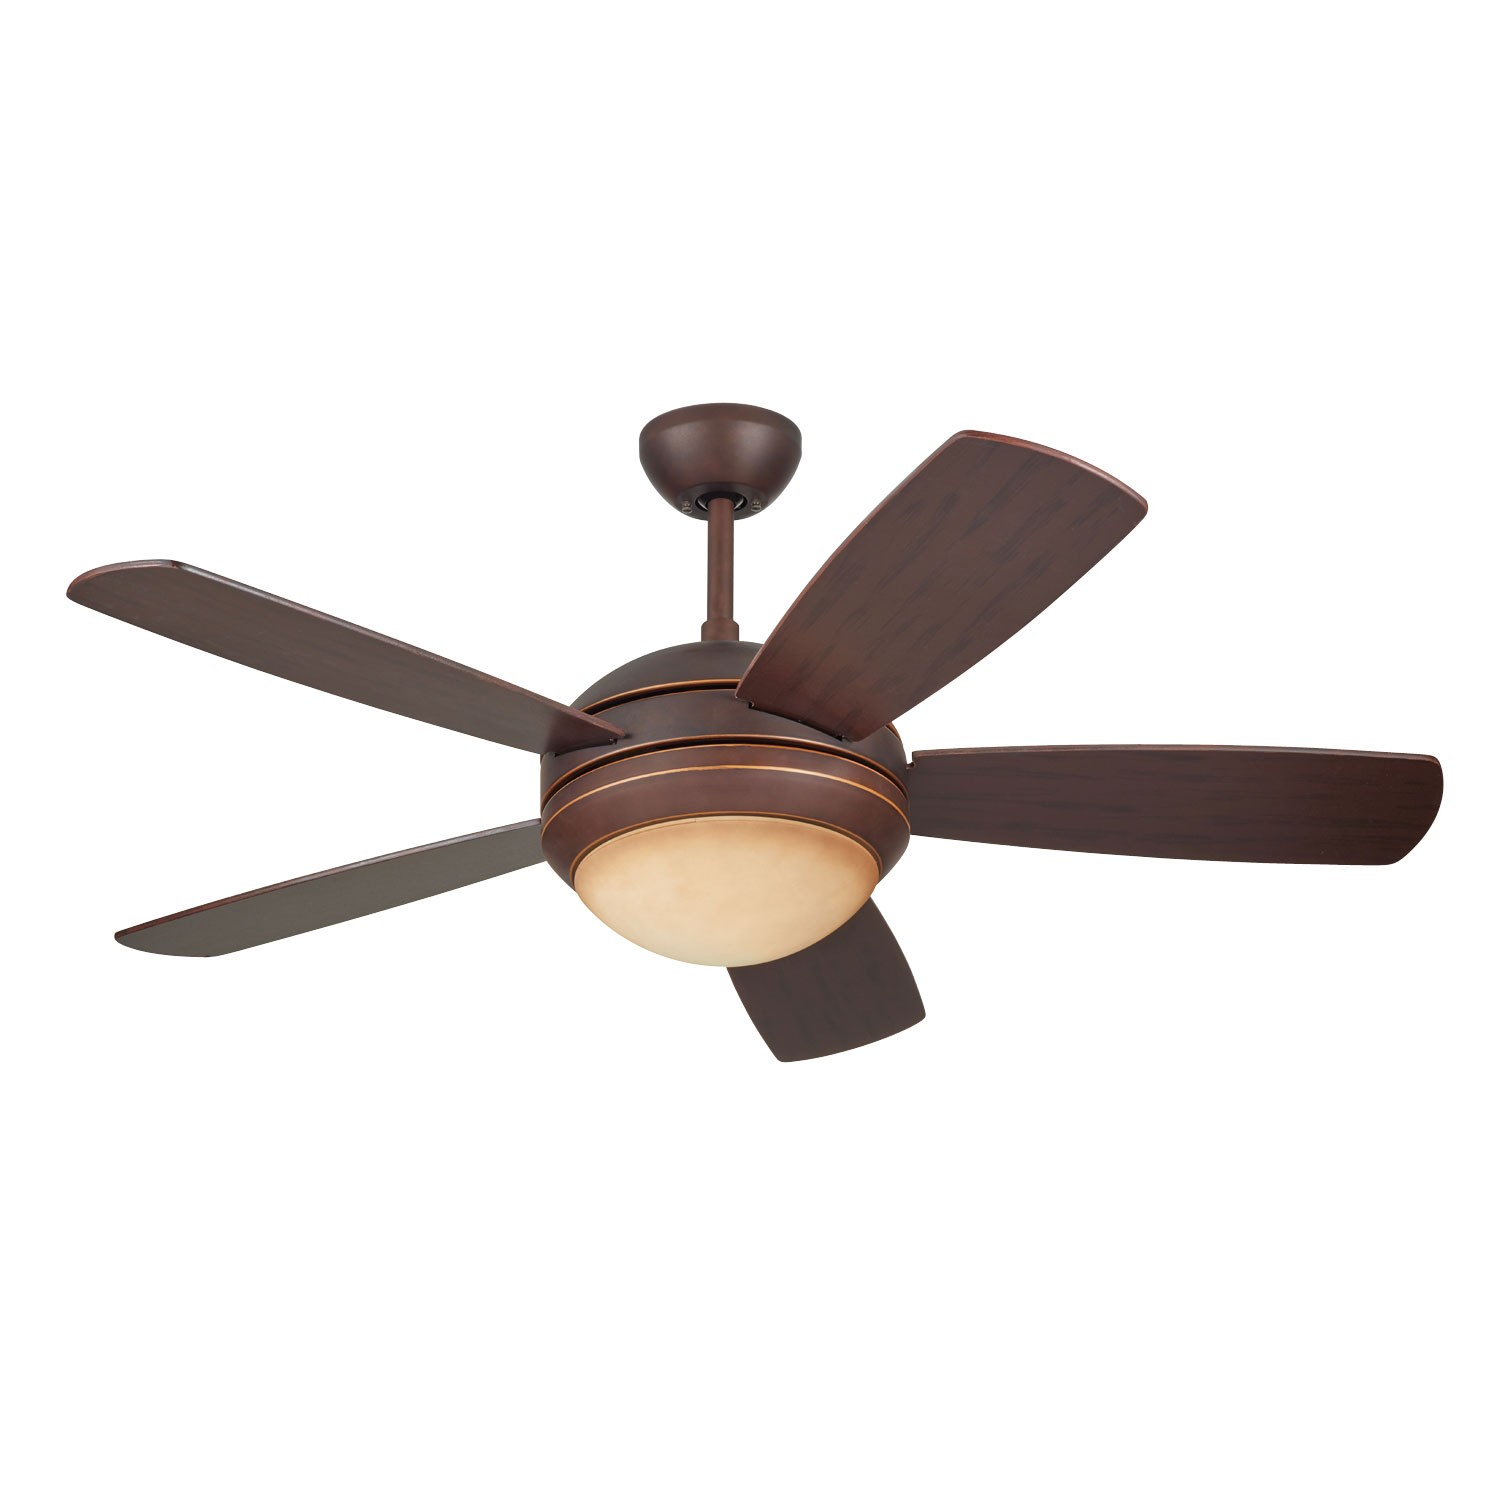 monte carlo discus ceiling fan photo - 5